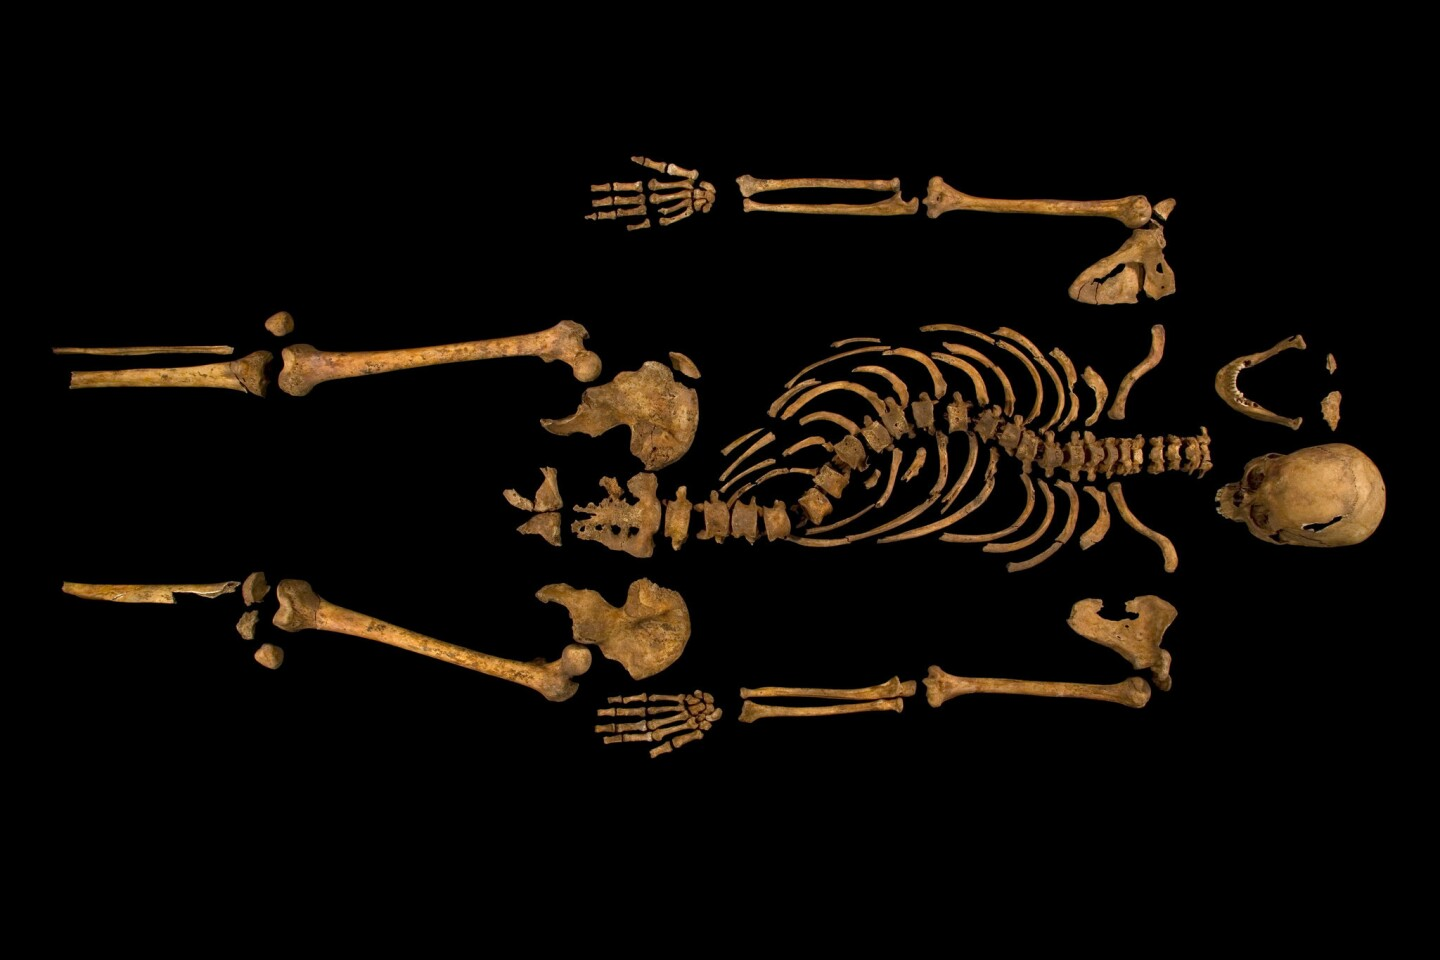 The skeleton of King Richard III was discovered beneath a parking lot in the summer of 2012.